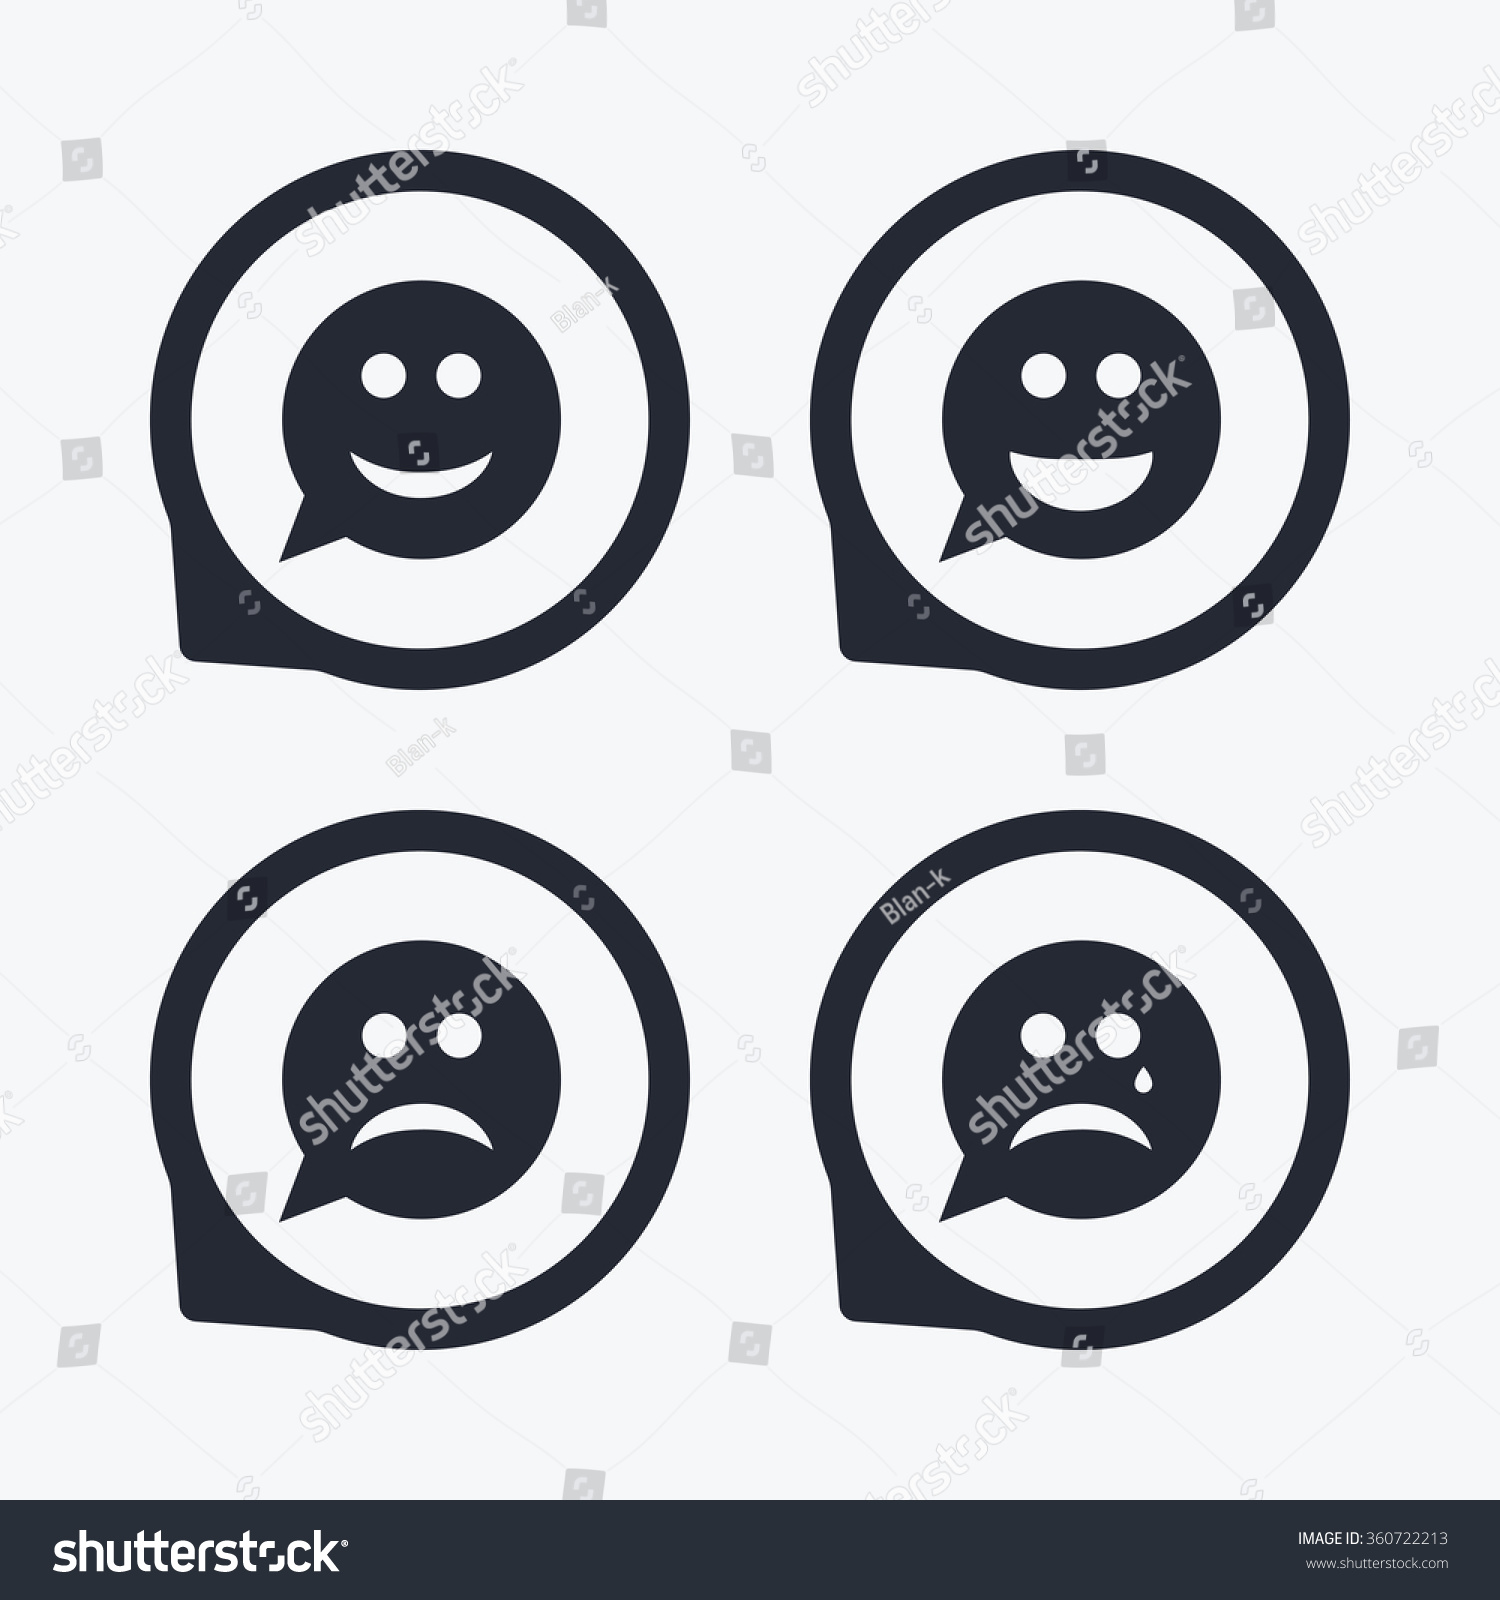 Crying Face Symbol